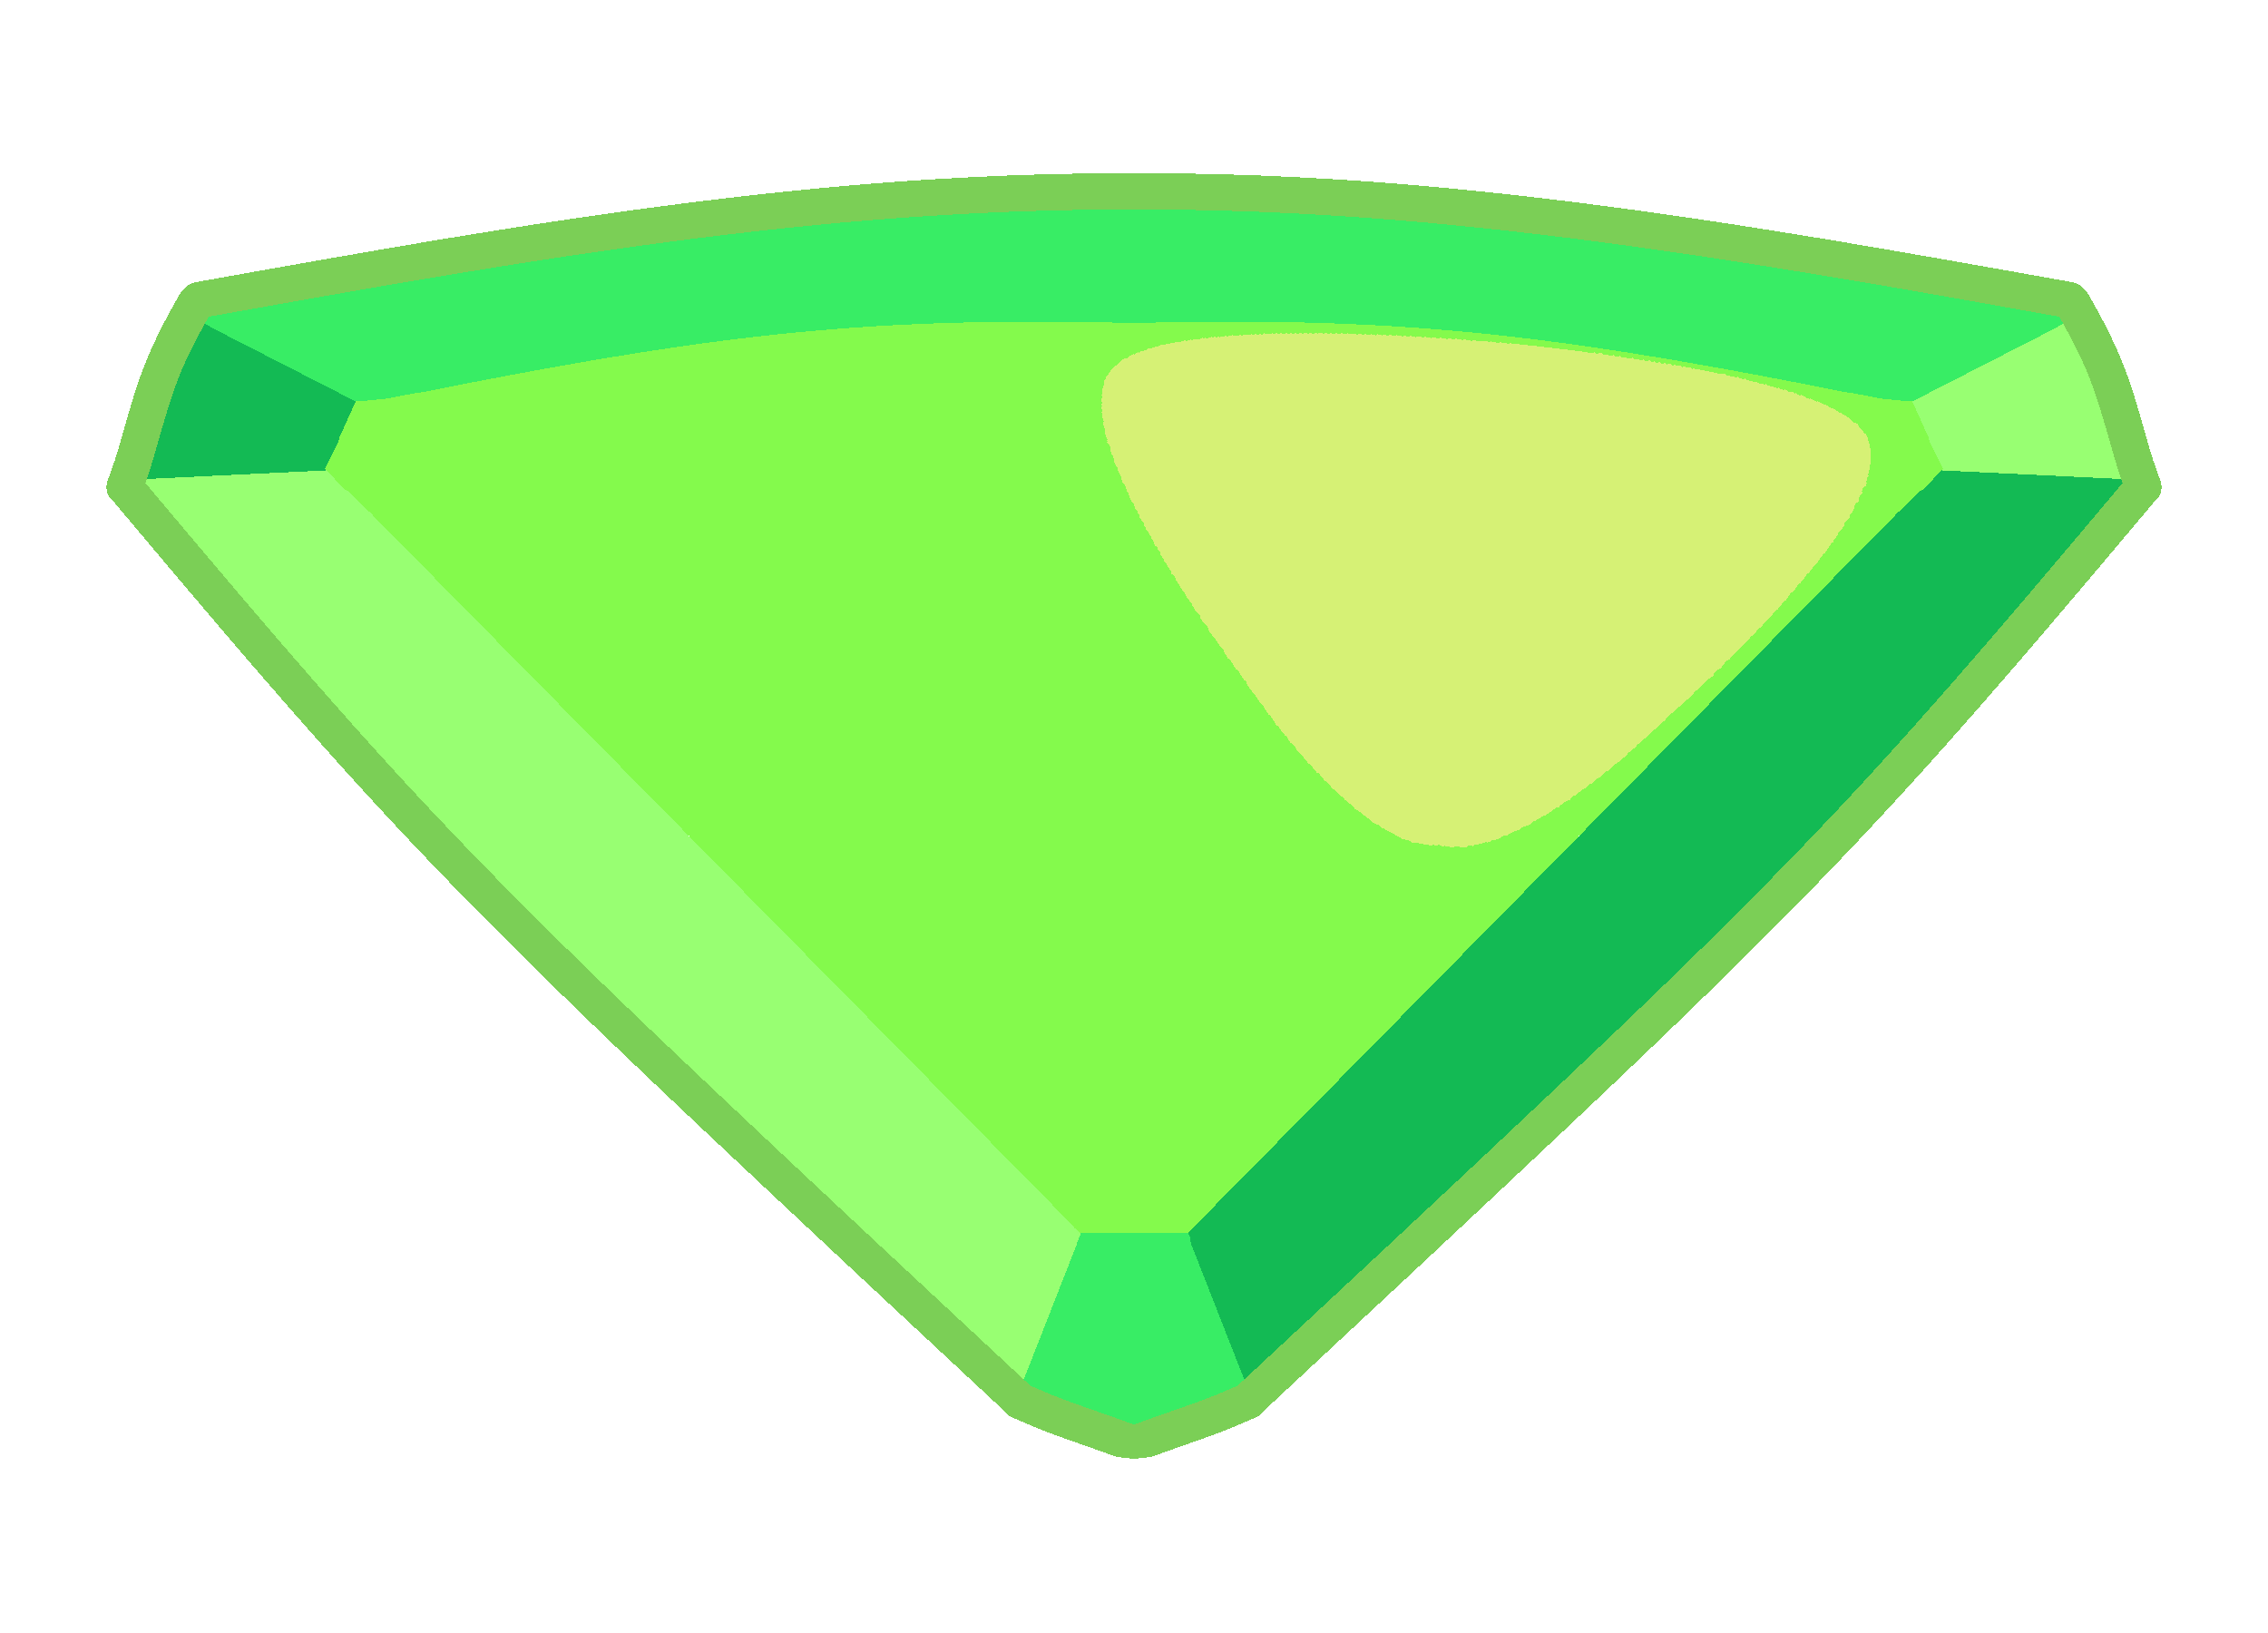 Transparent gem peridot. Collection of free gemmed